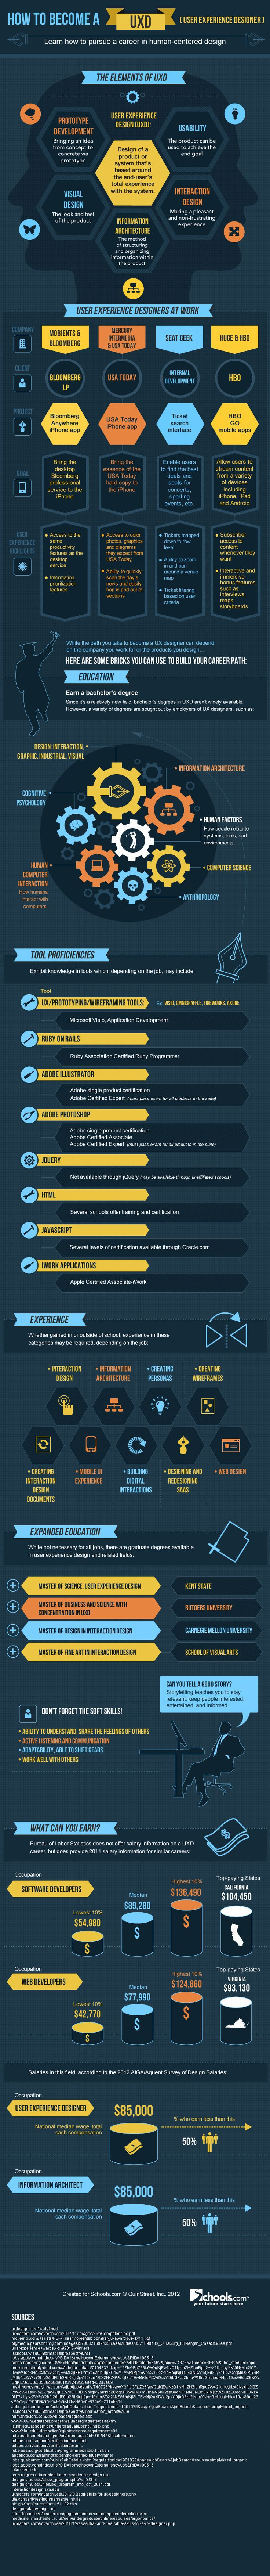 Infographic: How to Become UX Designer